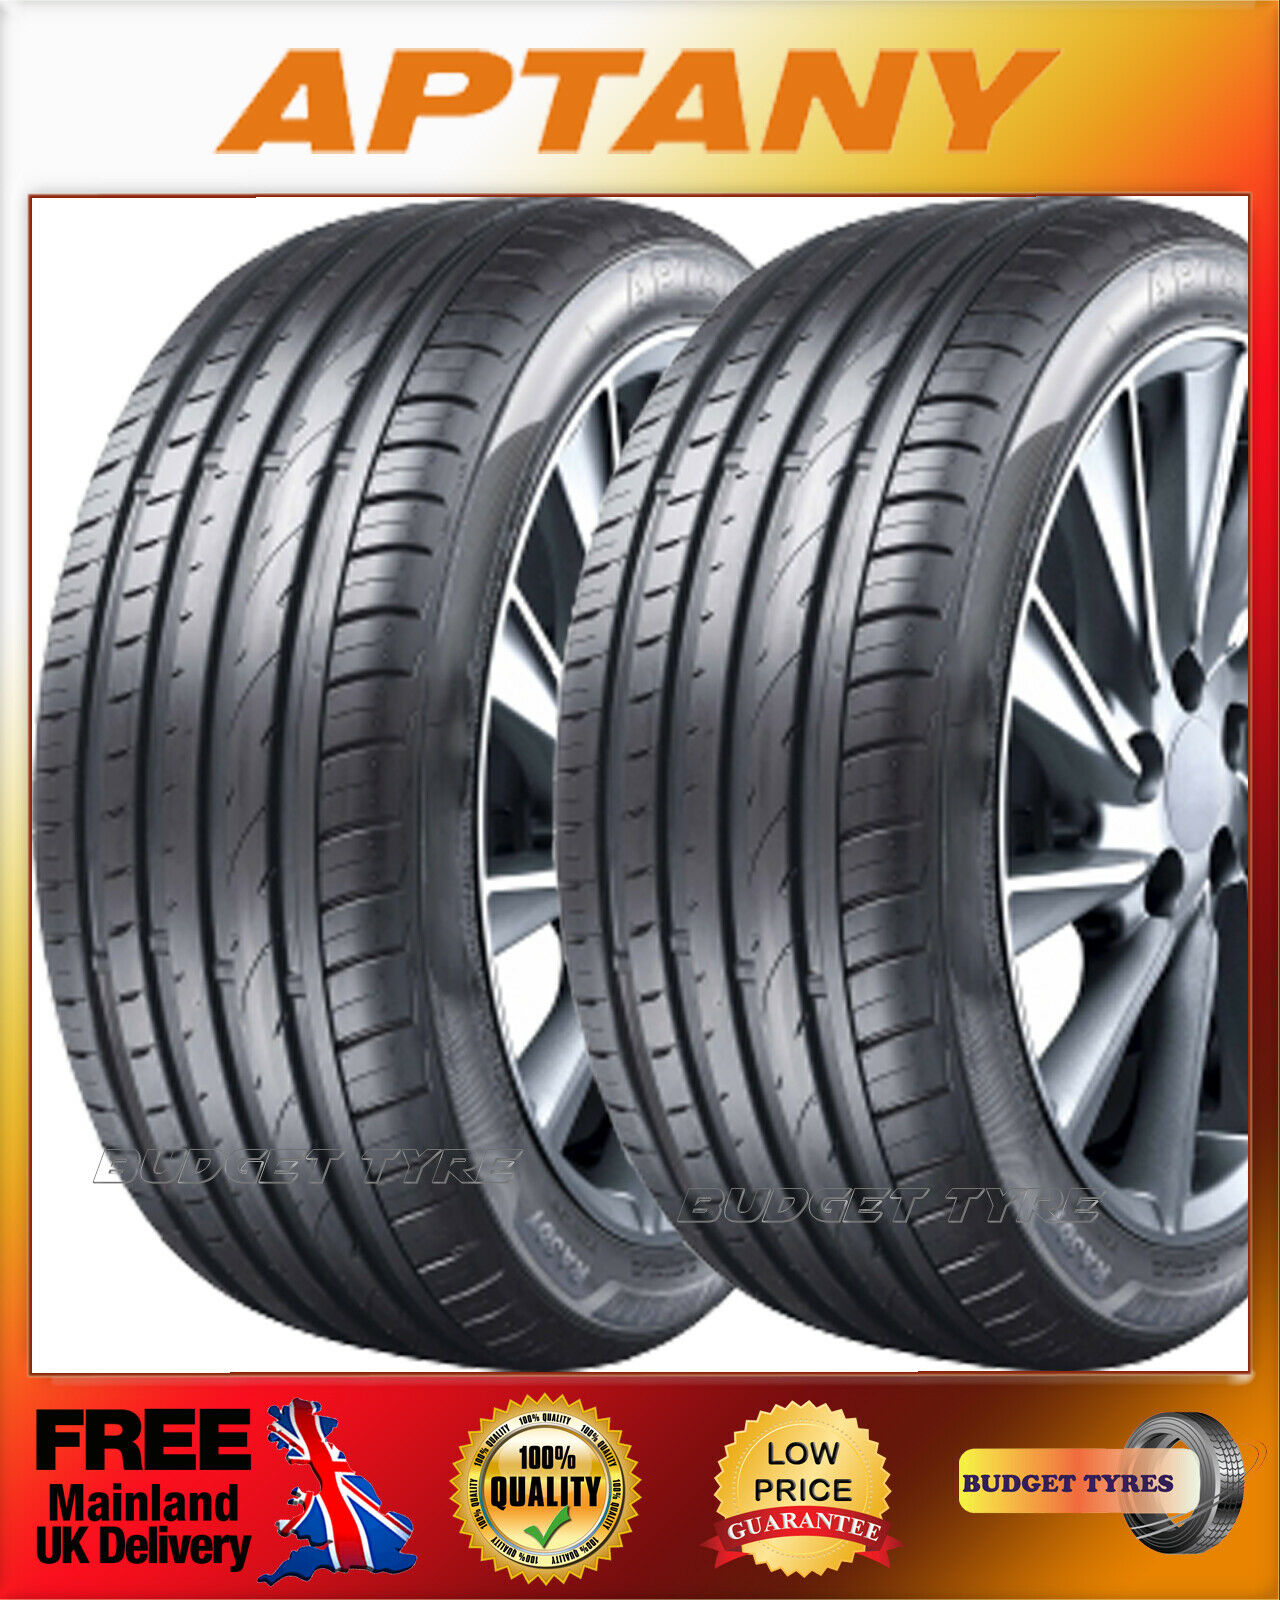 Tyre Barn for branded budget & part